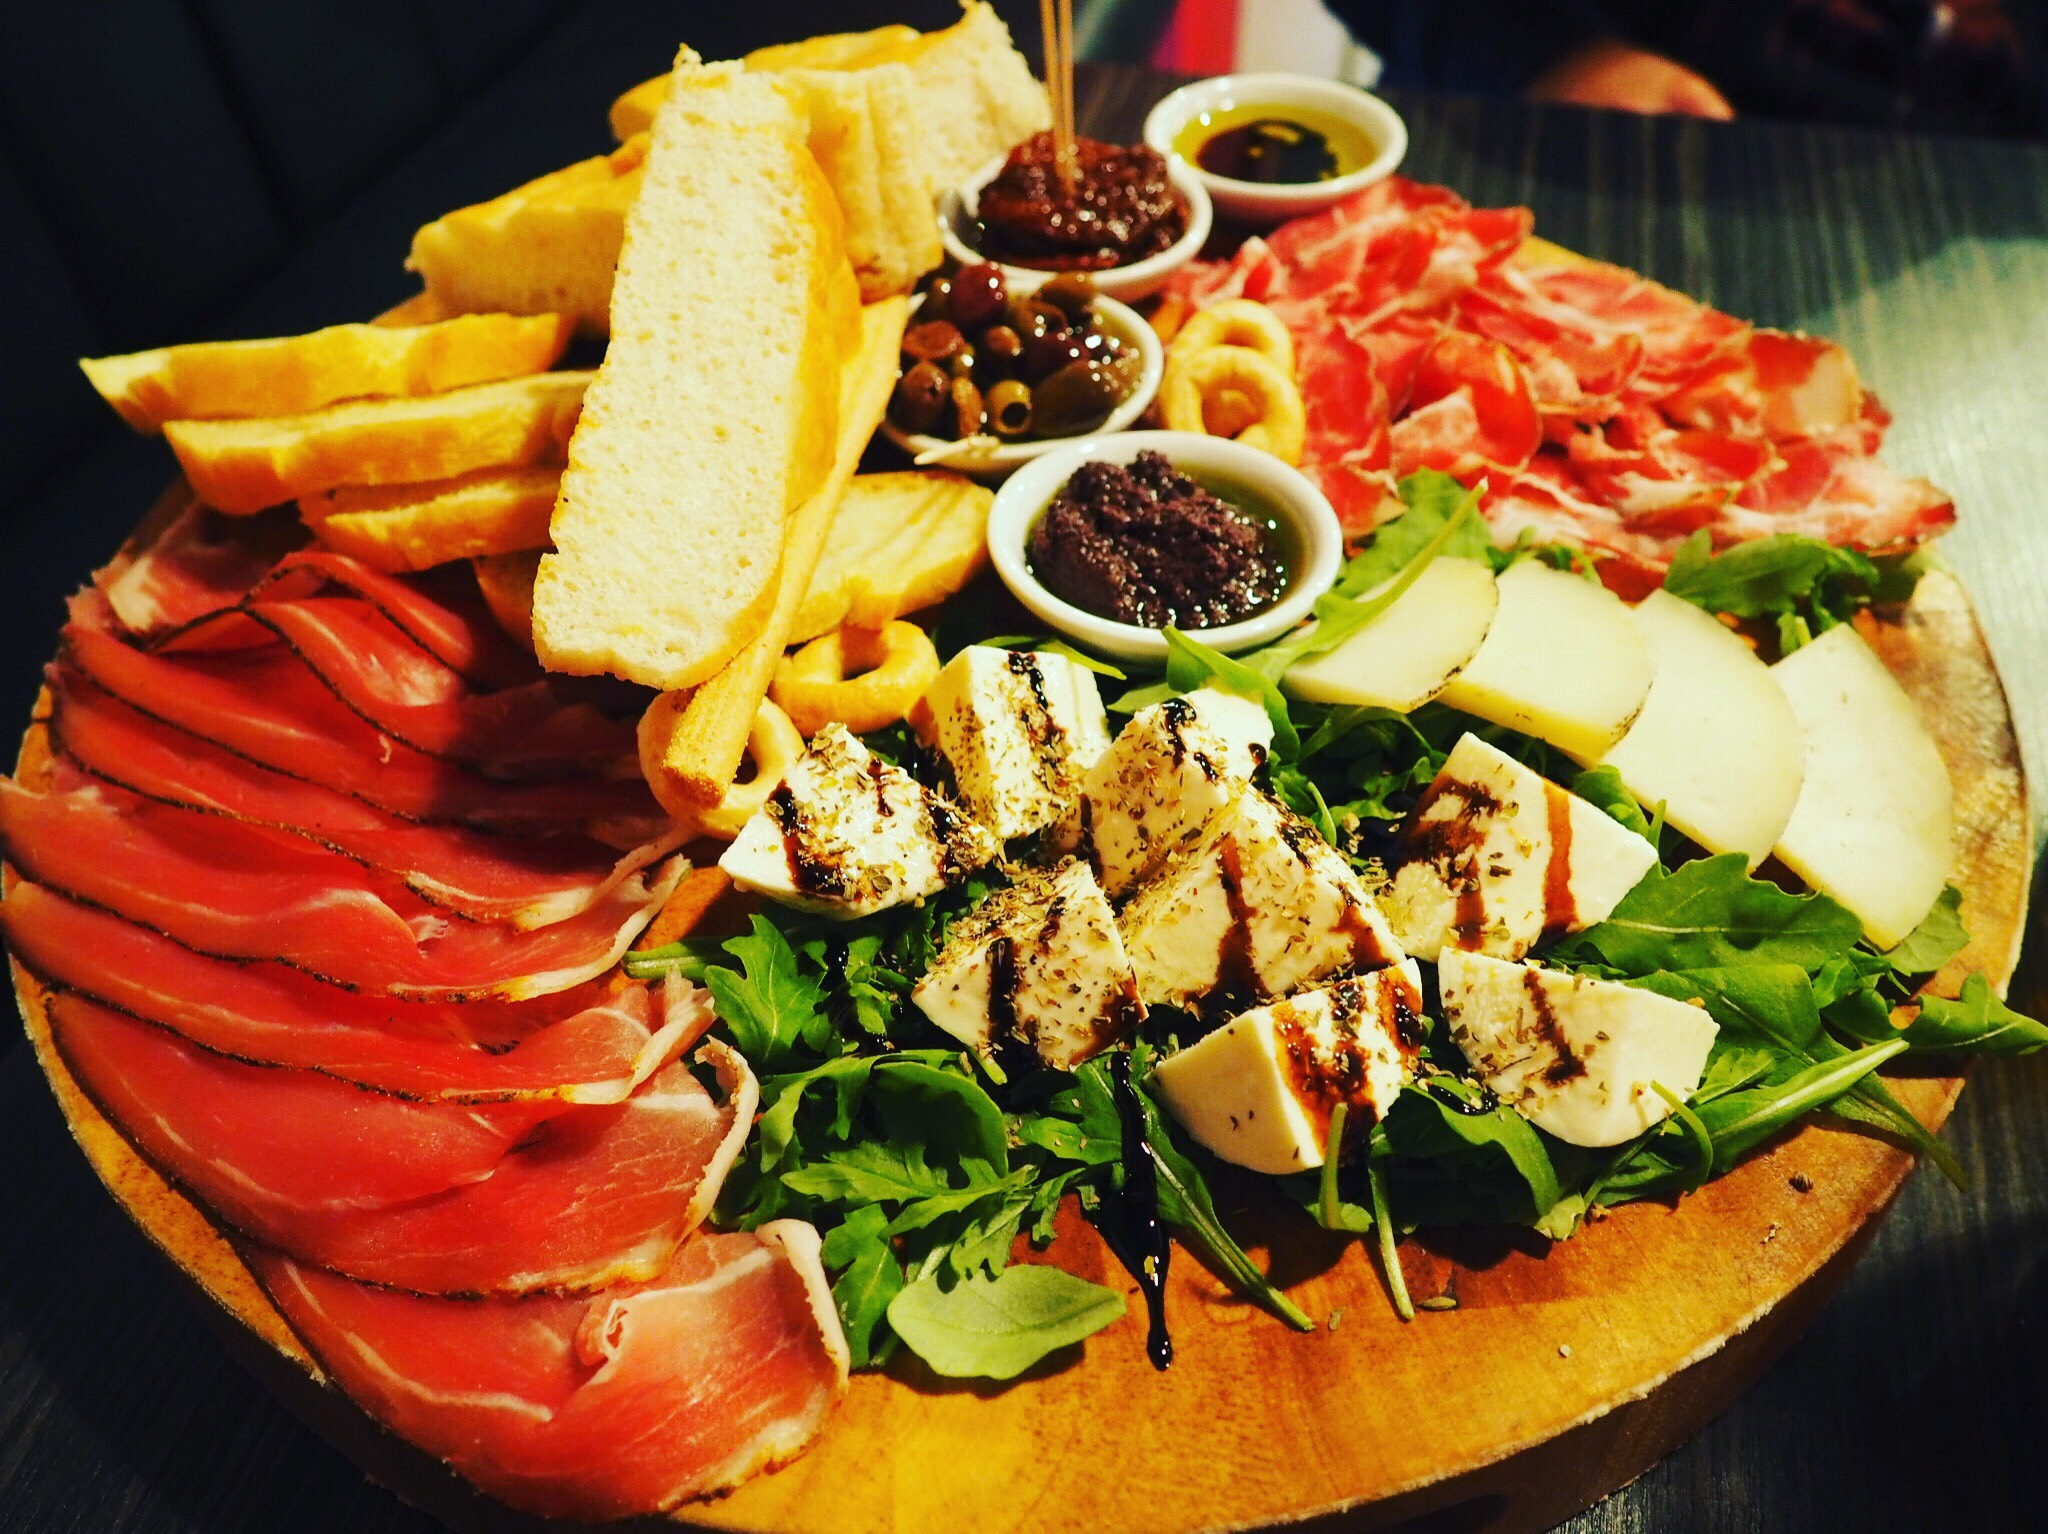 Veeno-York-Food-Platter